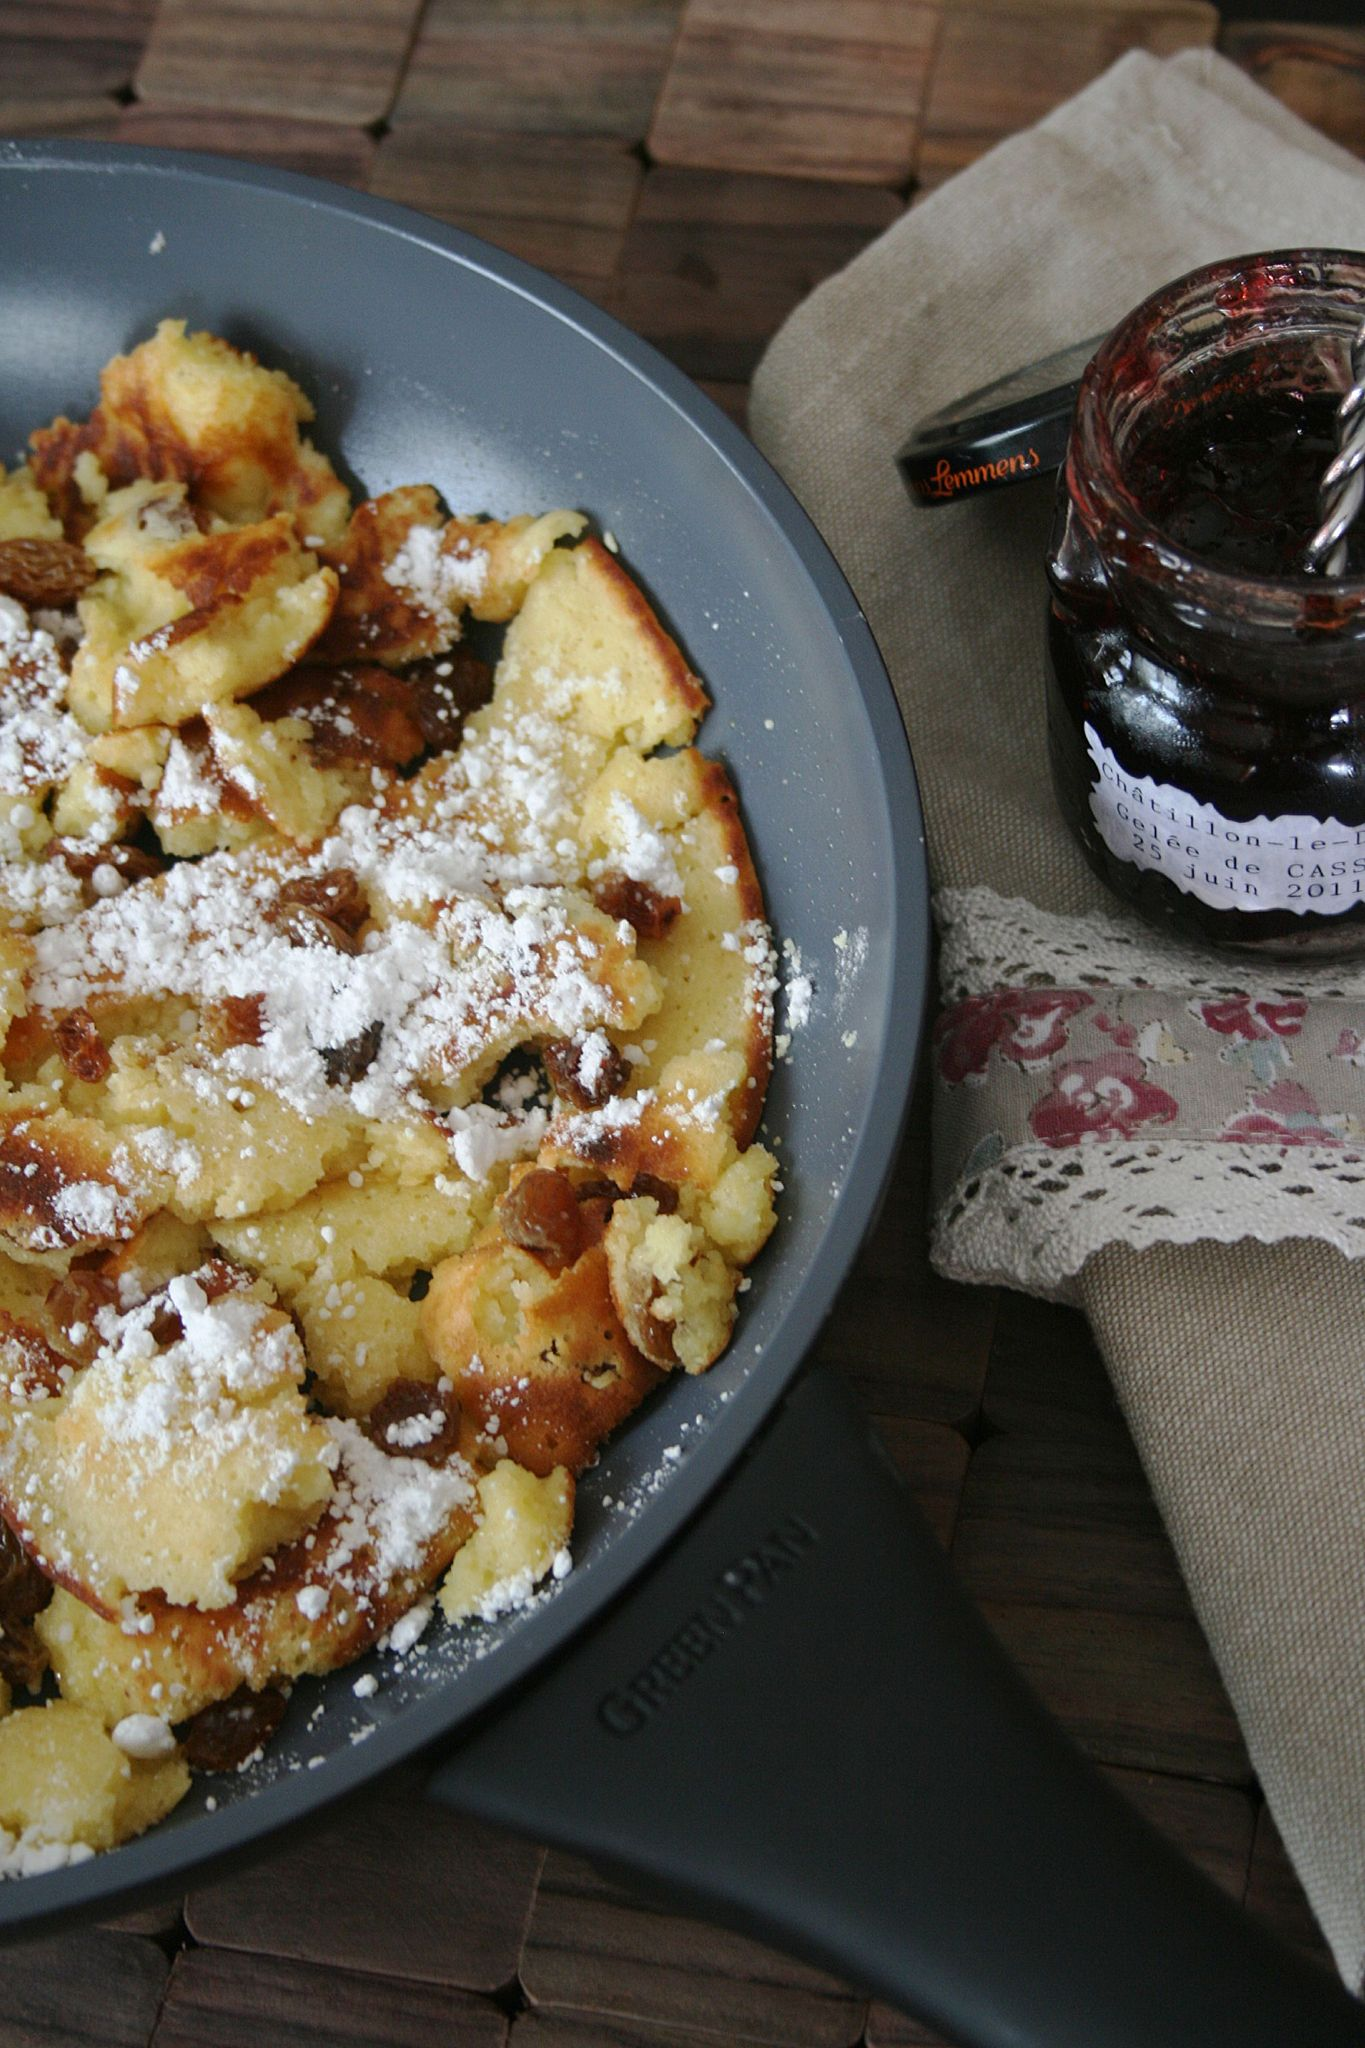 kaiserschmarrn cr pe autrichienne la po le greenpan blogs de cuisine. Black Bedroom Furniture Sets. Home Design Ideas